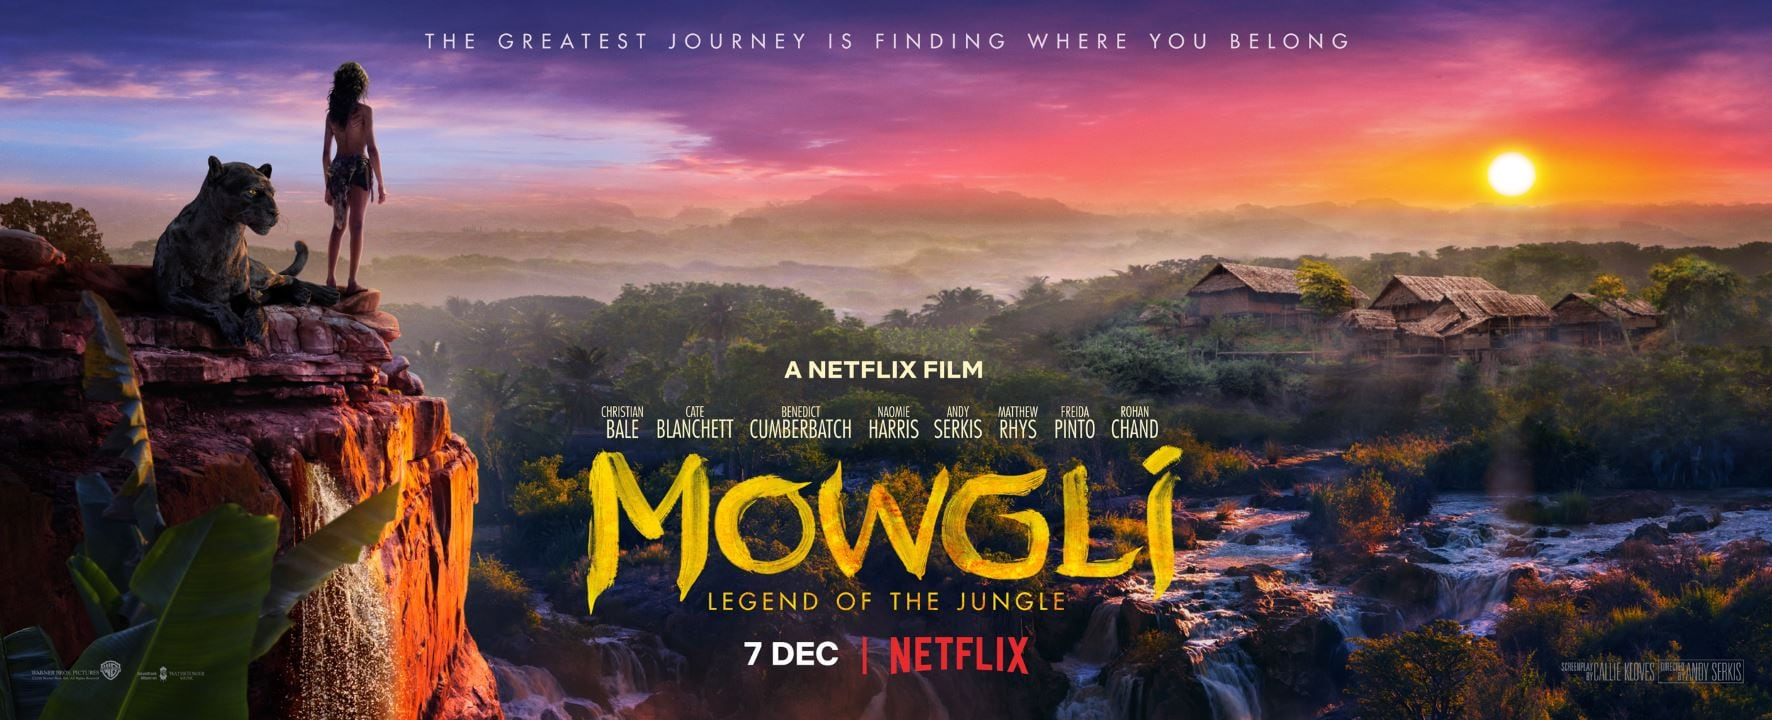 Netflix, Andy Serkis' Mowgli: Legend of the Jungle Gets December Release Date, New Trailer